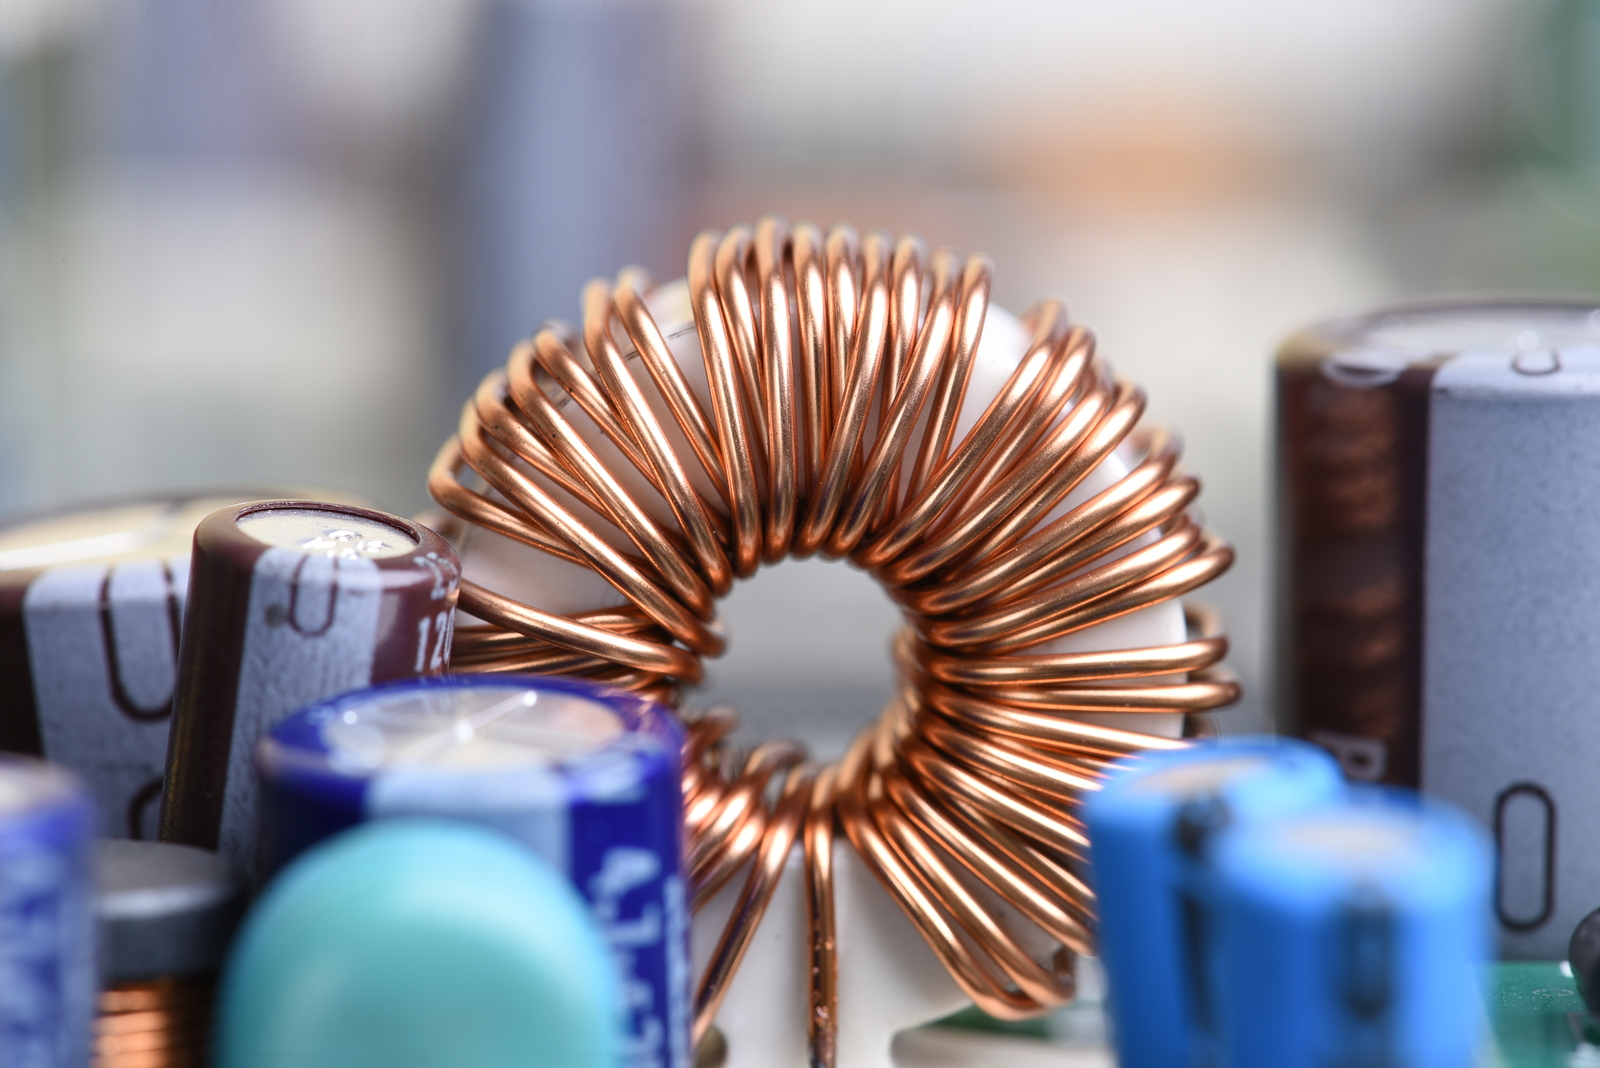 The teaching and understanding of electromagnetism require a broad abstraction that is why we must perform activities that help students better assimilate and relate the concept. -